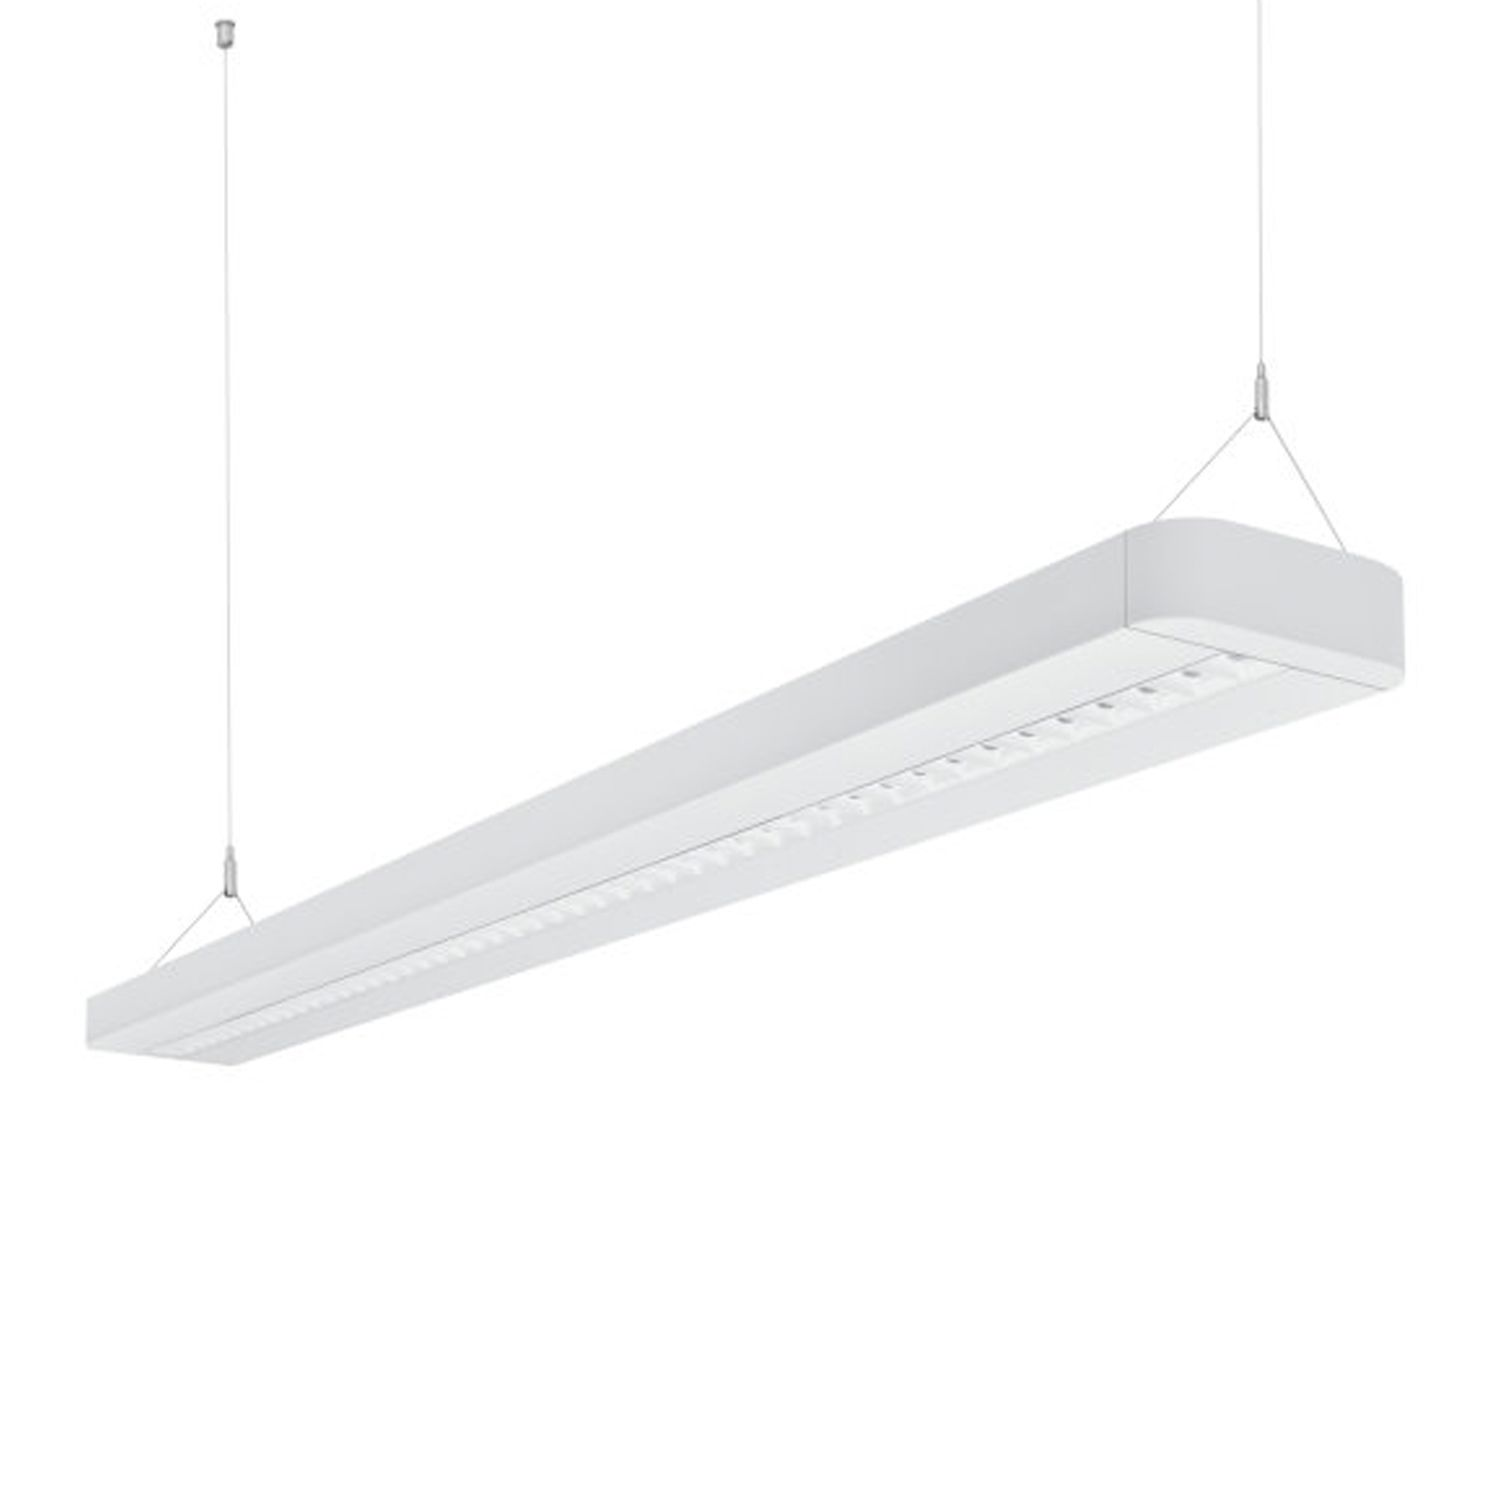 Ledvance LINEAR IndiviLED DIRECT 34W 120cm 4000K  | Cool White